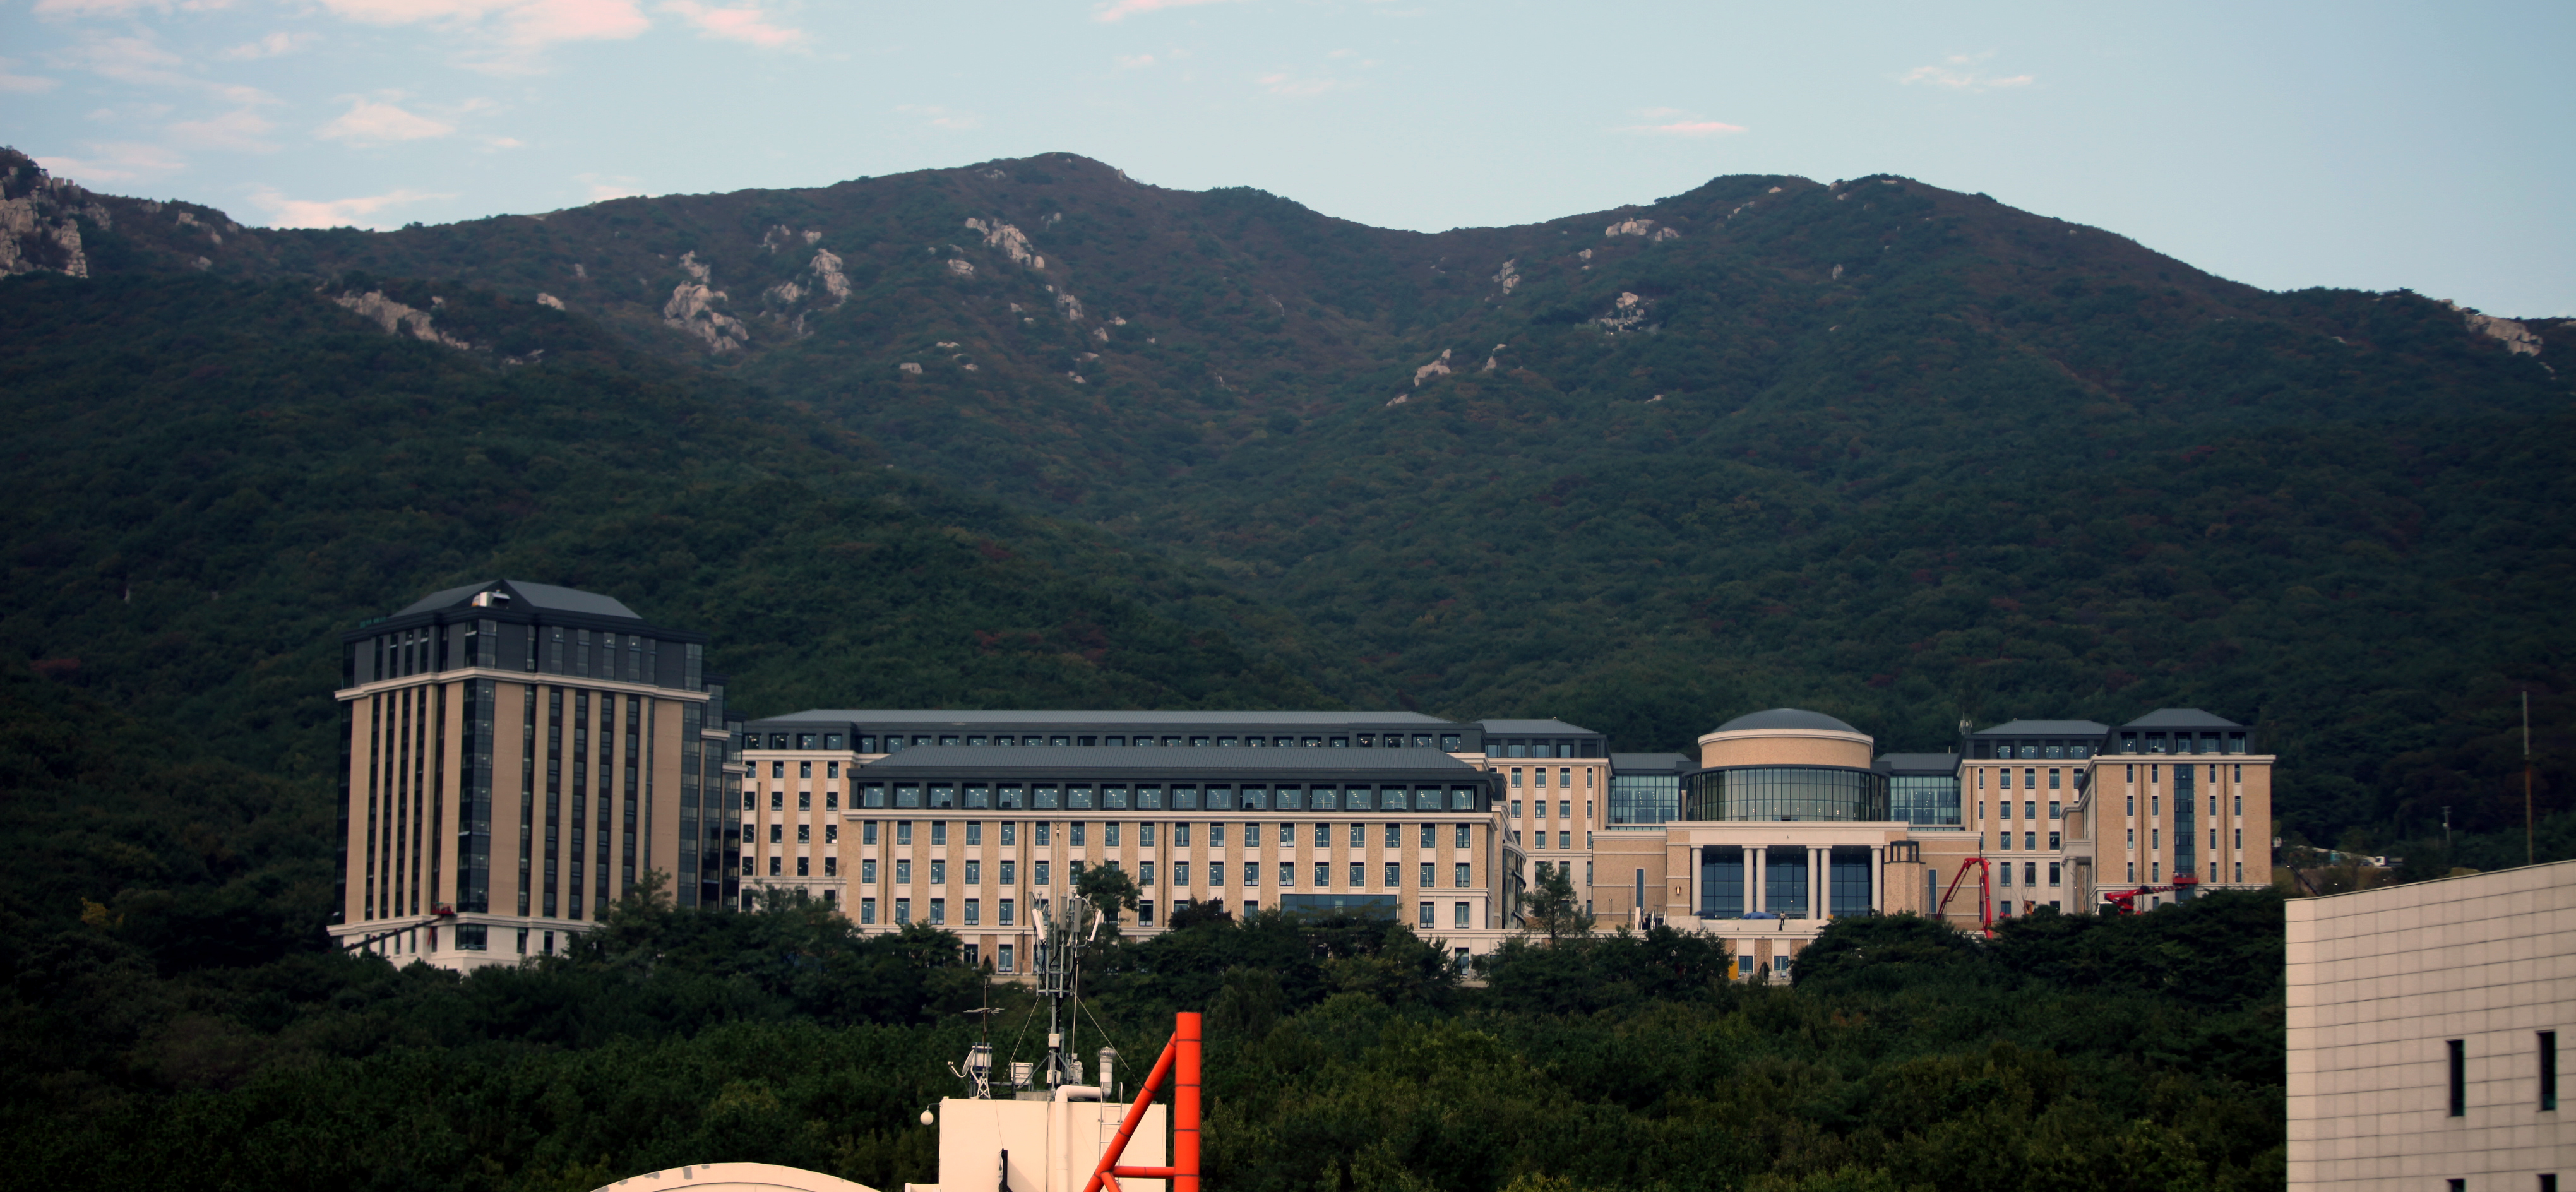 File:Busan University of Foreign Studies-Campus Overview.jpg - Wikipedia